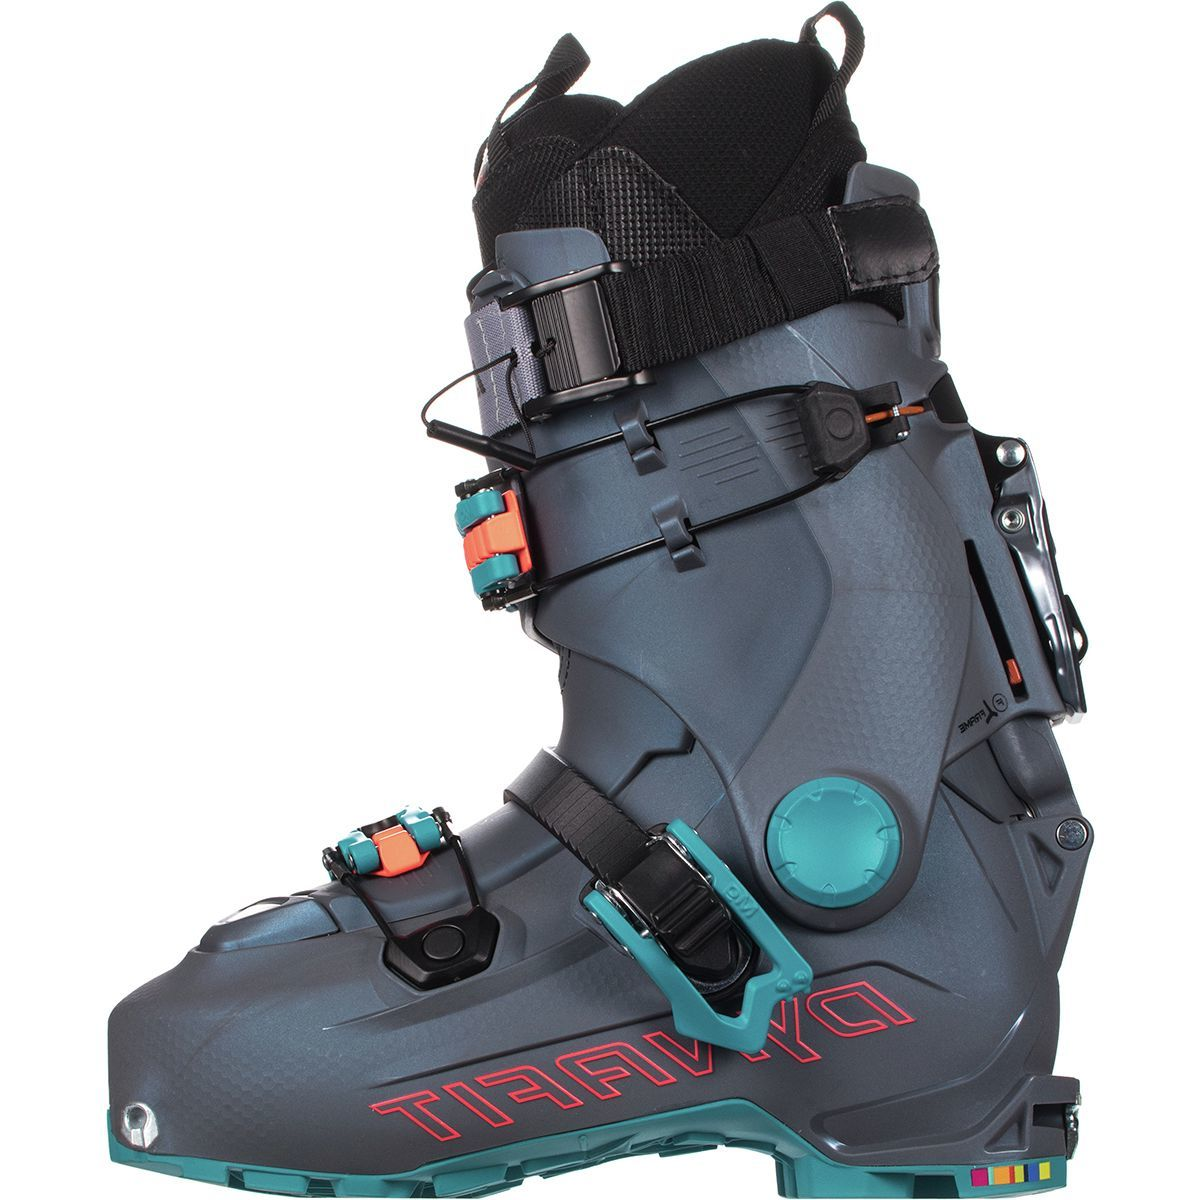 Dynafit Hoji Pro Tour Ski Boot - Women's